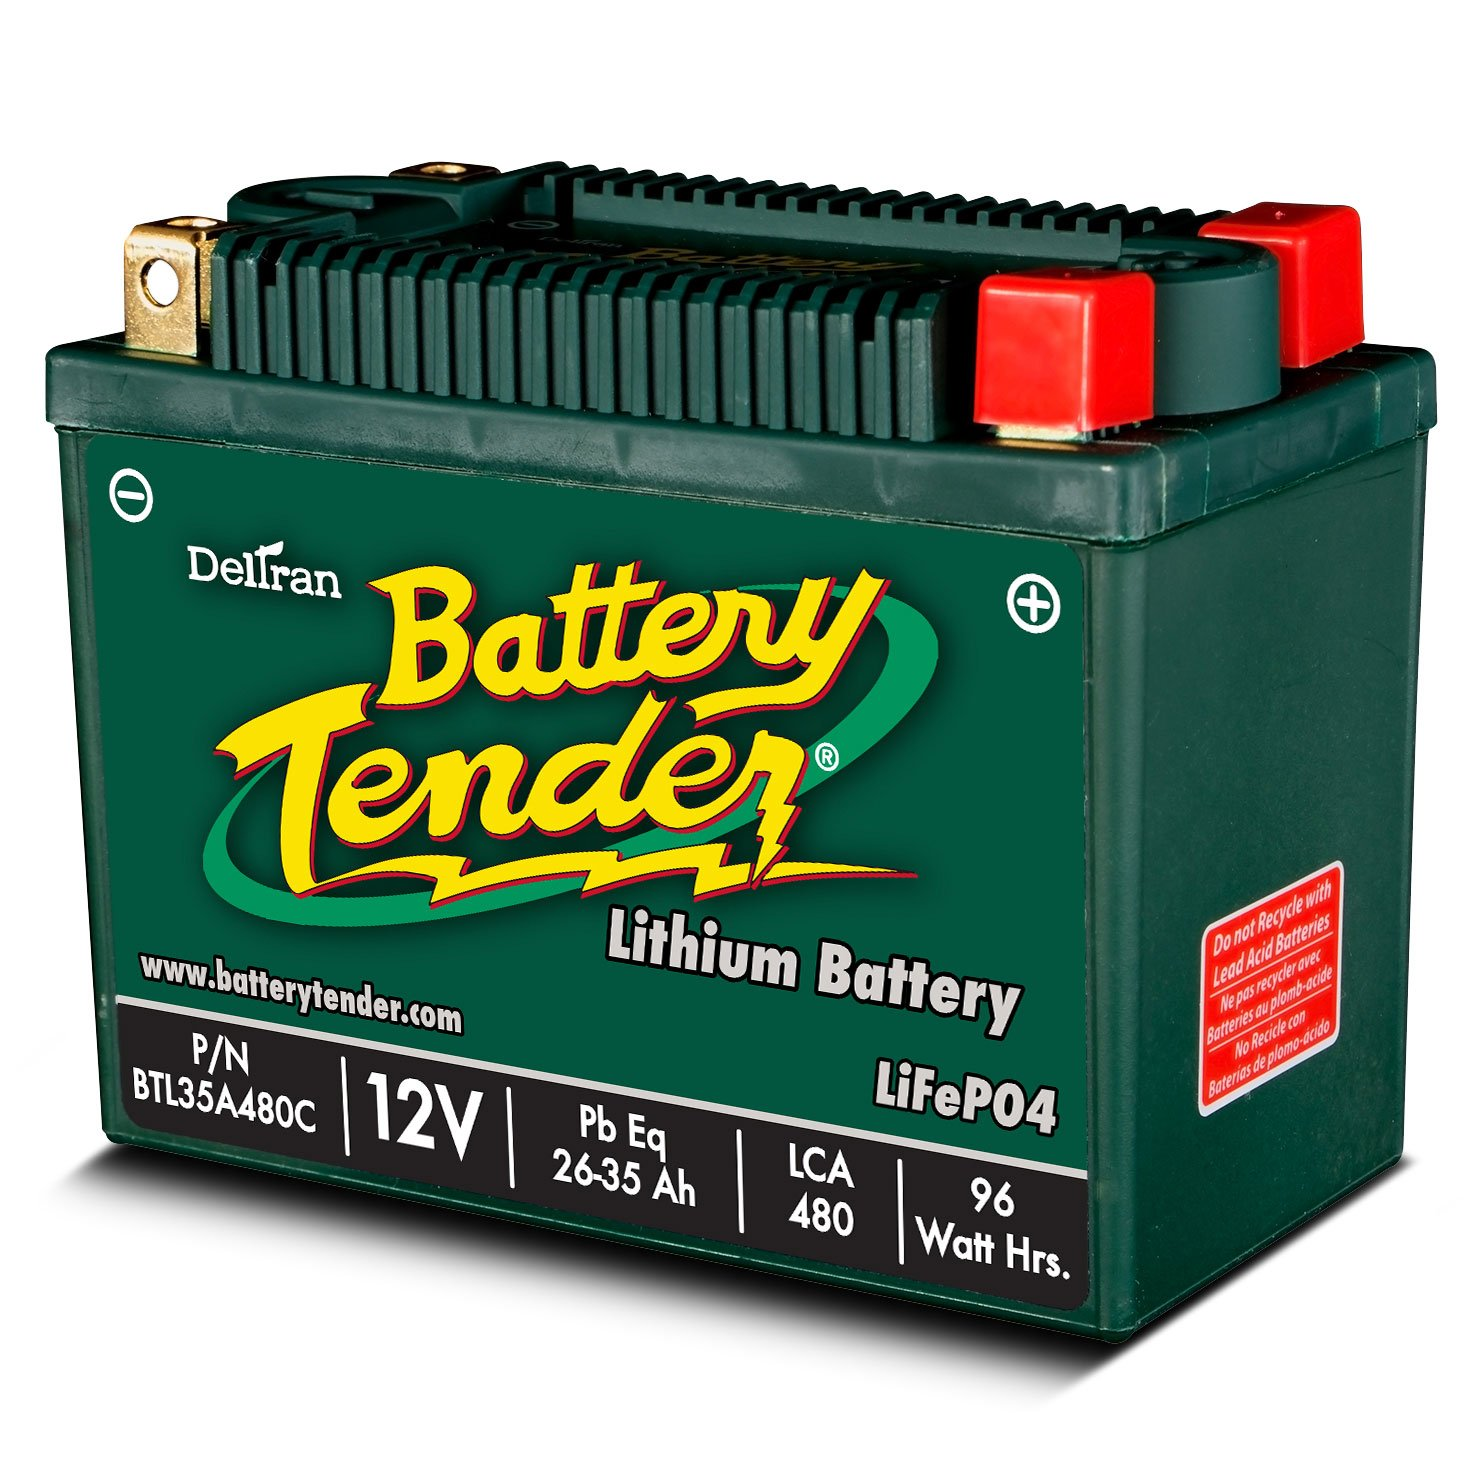 Battery Tender BTL35A480C